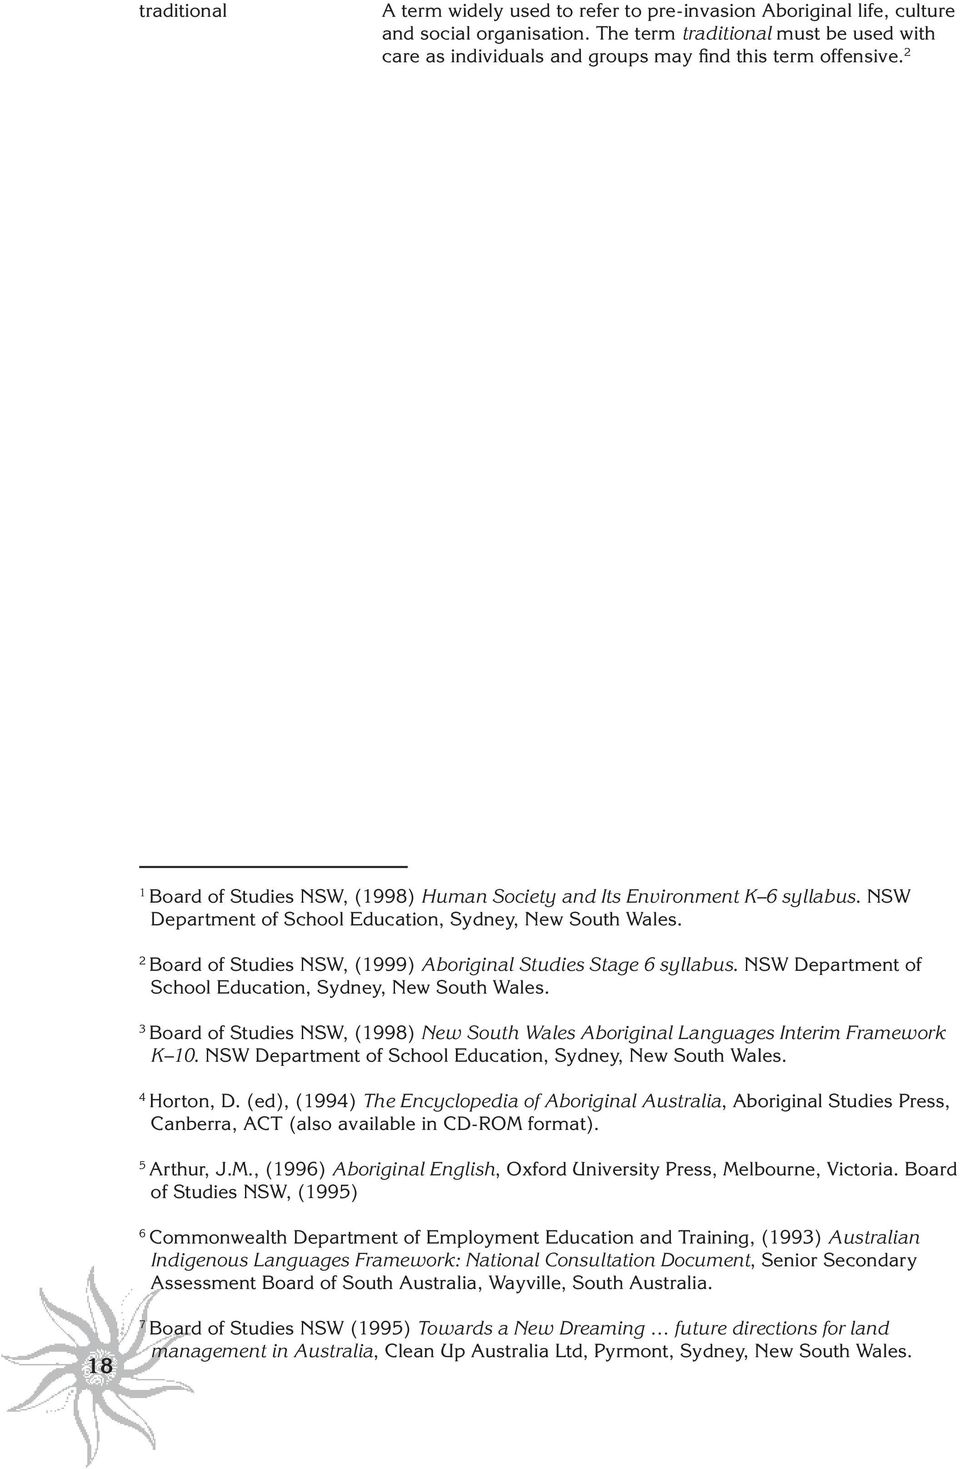 NSW Department of School Education, Sydney, New South Wales. 2 Board of Studies NSW, (1999) Aboriginal Studies Stage 6 syllabus. NSW Department of School Education, Sydney, New South Wales.